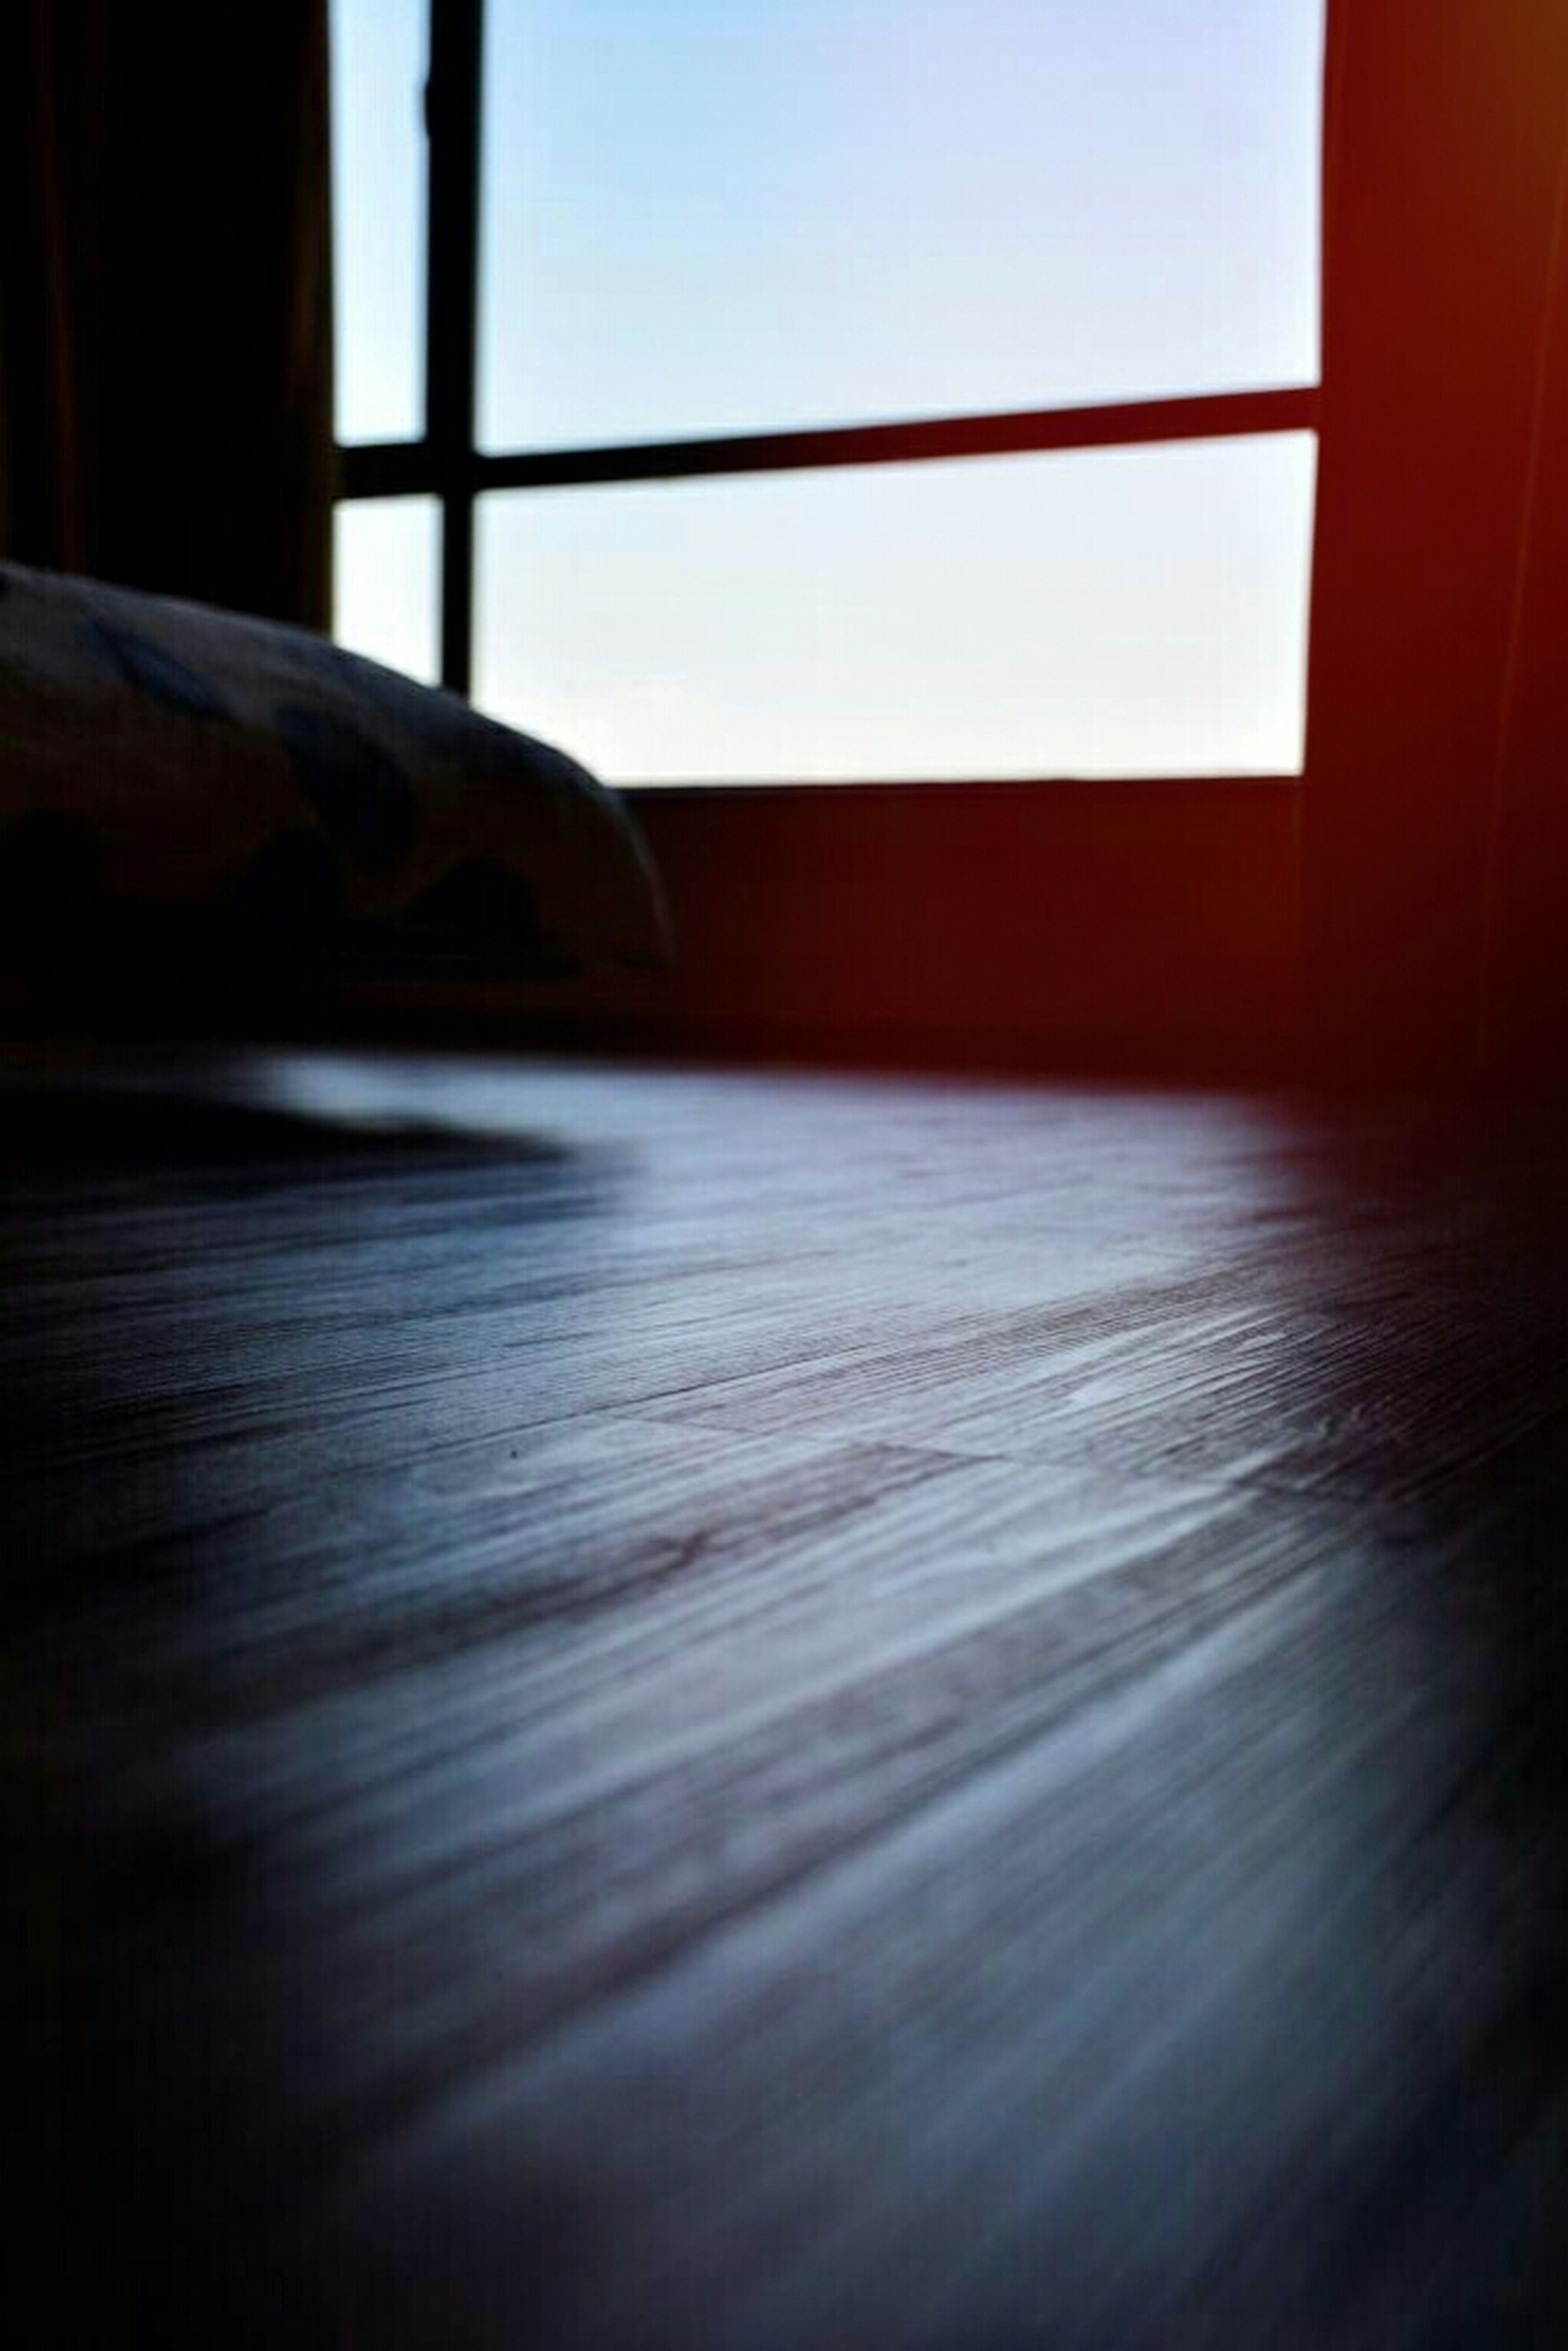 indoors, window, close-up, wood - material, water, selective focus, reflection, home interior, transparent, glass - material, table, no people, focus on foreground, surface level, day, sunlight, wooden, wood, built structure, part of